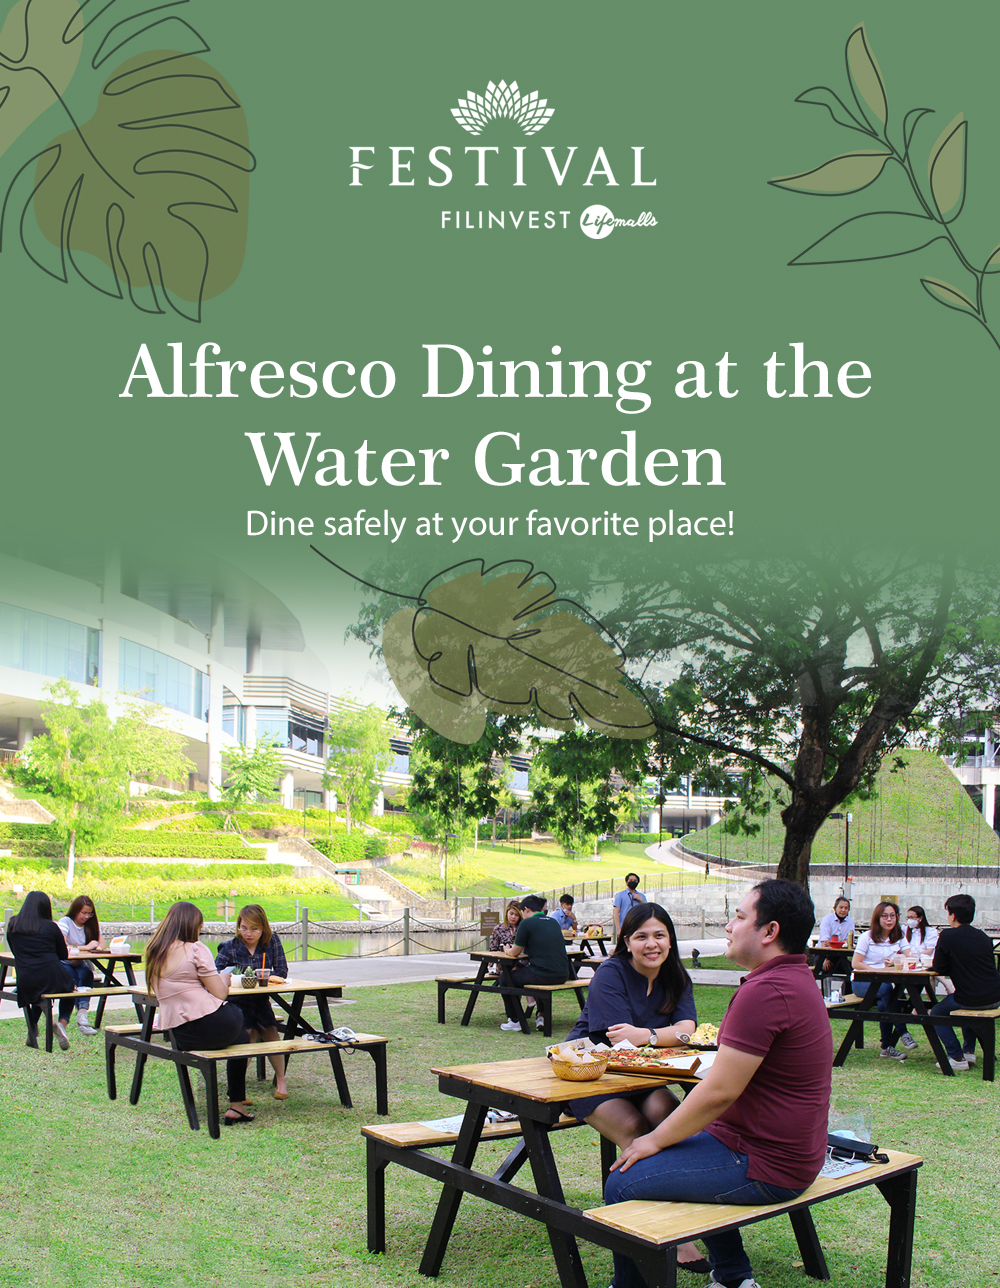 ALFRESCO DINING AT THE WATER GARDEN (Festival Mall)